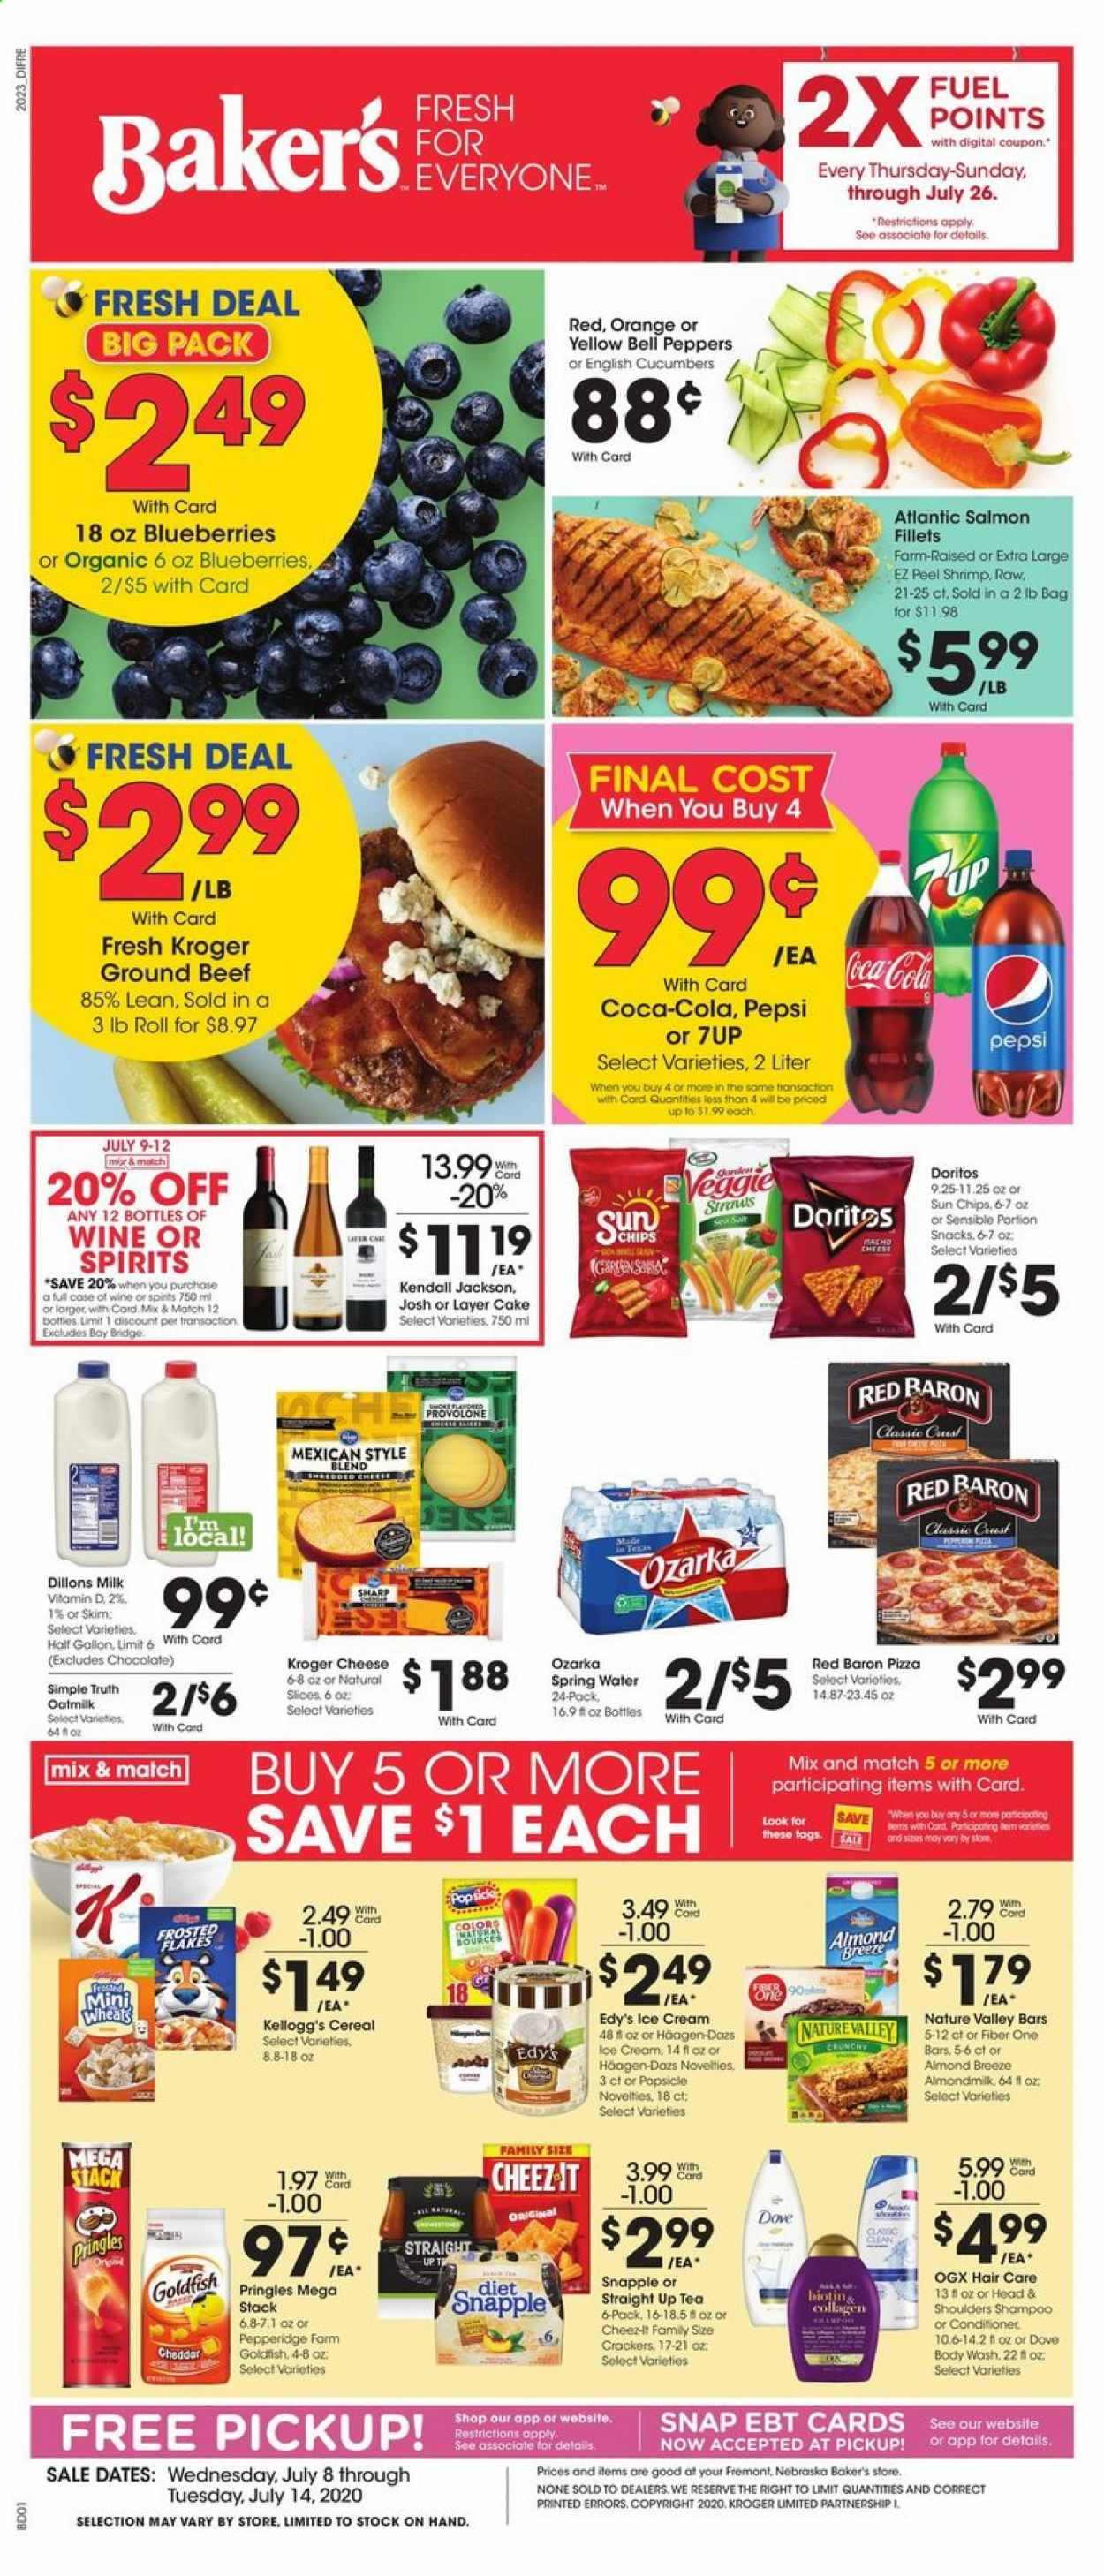 Baker's Flyer - 07.08.2020 - 07.14.2020 - Sales products - bag, beef meat, bell peppers, blueberries, body wash, cereals, coca-cola, conditioner, crackers, cucumbers, dates, doritos, dove, fuel, ground beef, milk, salmon, shampoo, sharp, shrimp, spring water, tea, veggie, head & shoulders, ice cream, pizza, pringles, provolone, cheddar, pepsi, orange, organic, chips, chocolate, cheese, cake, cereal, wine, flakes, peppers. Page 1.